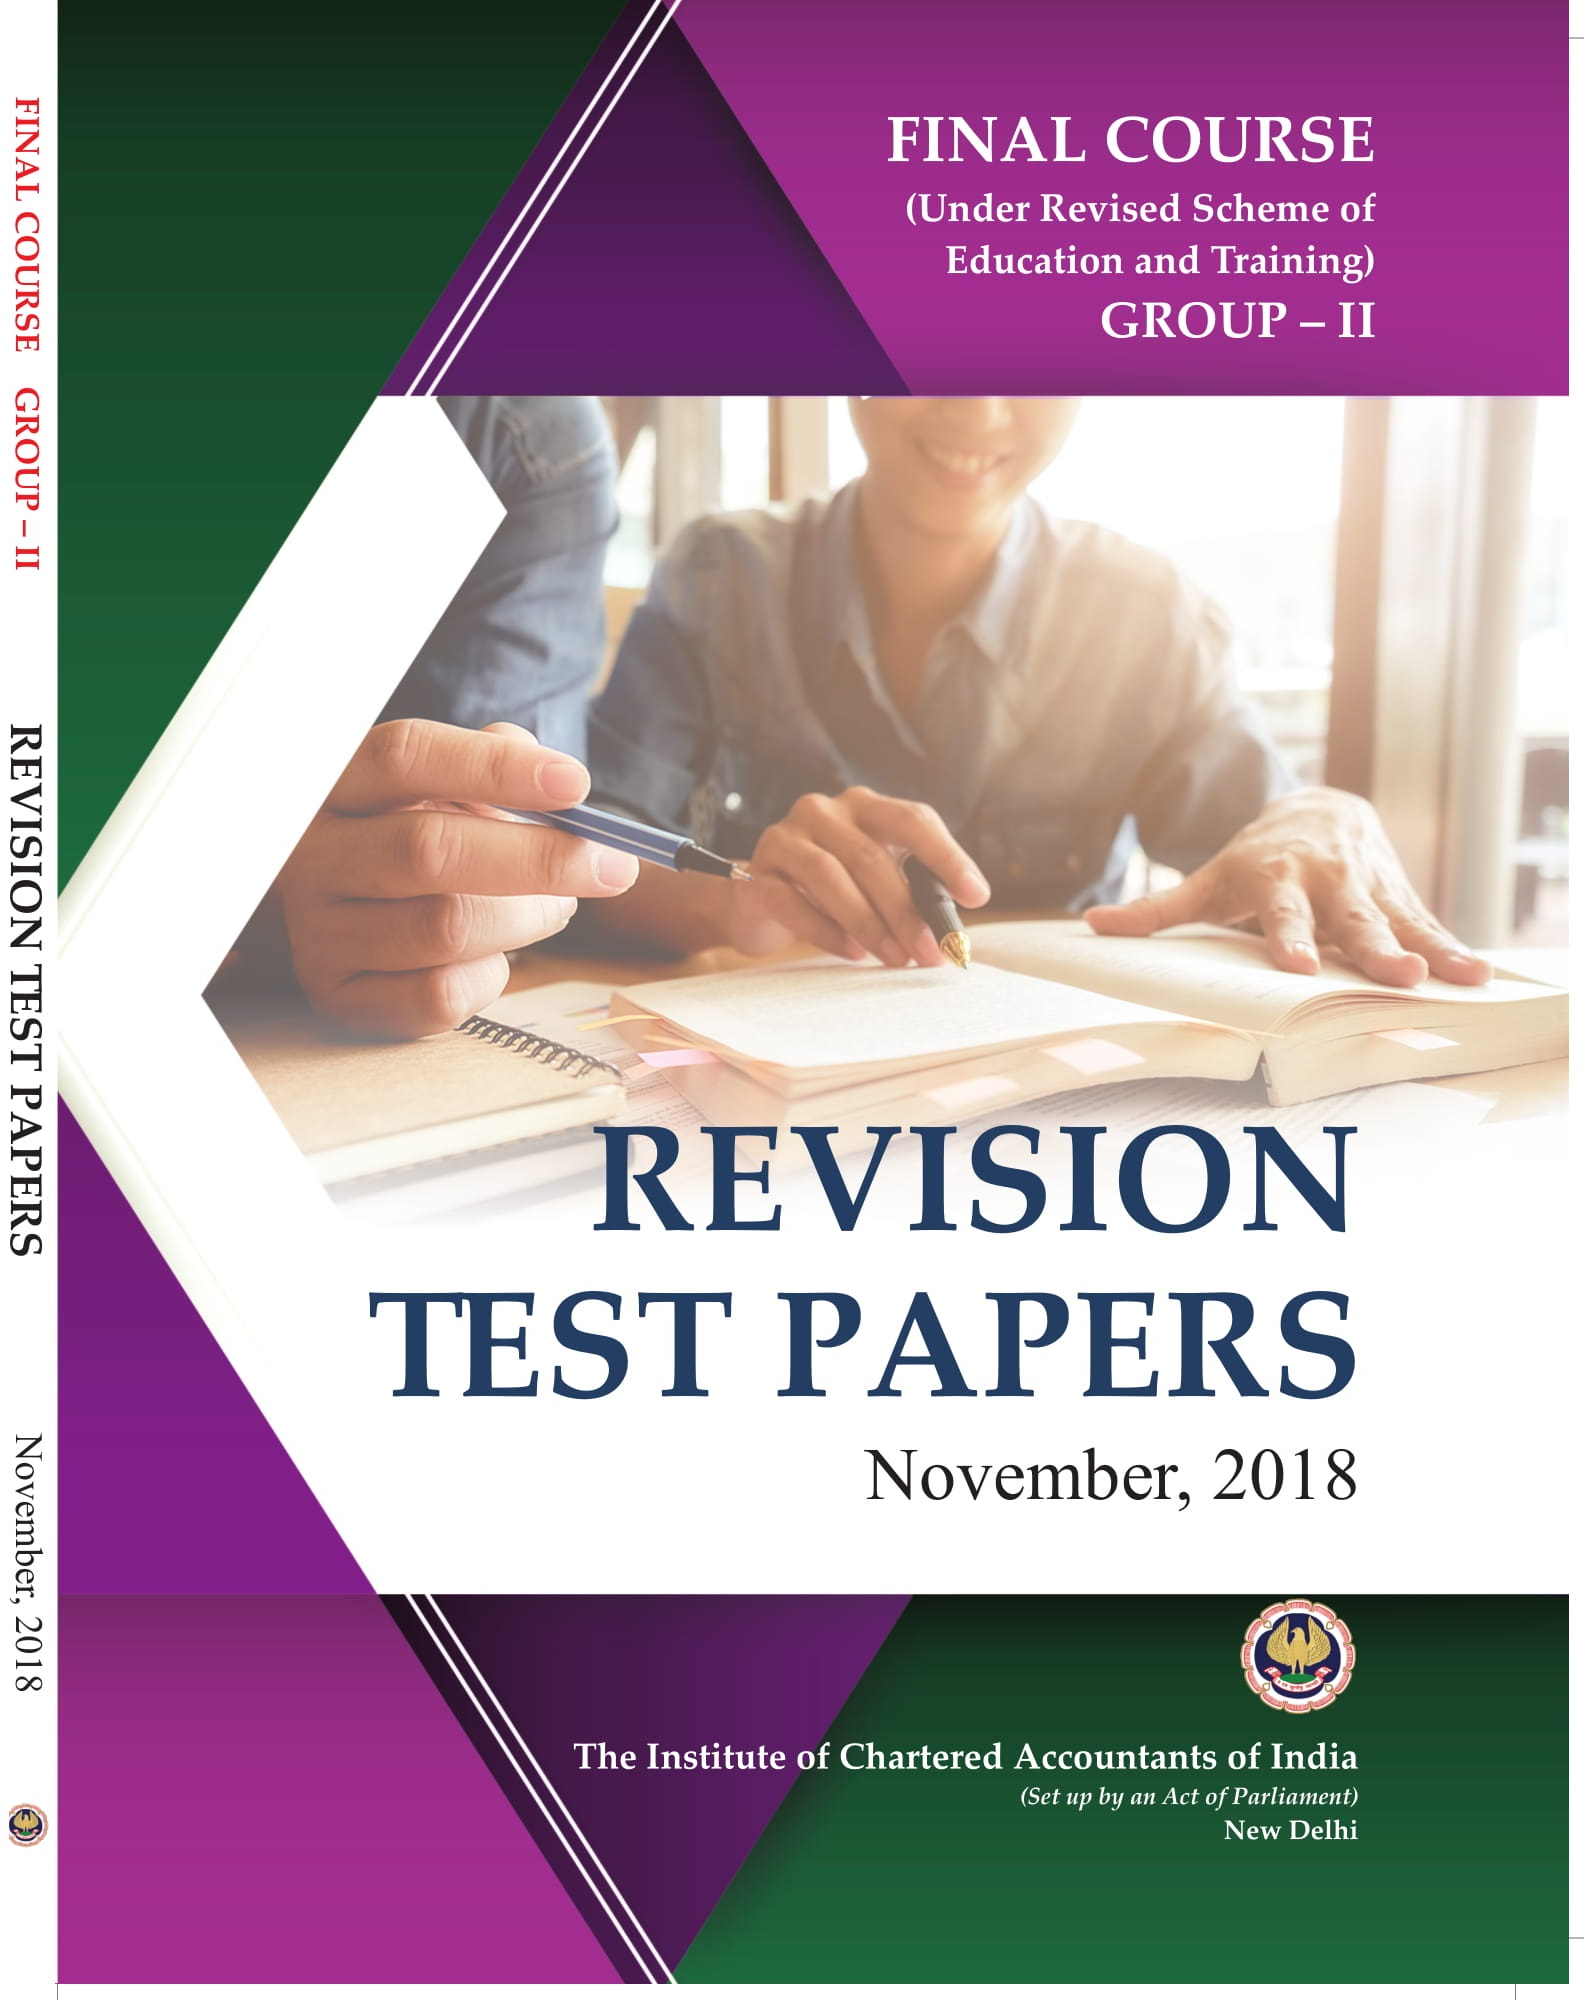 Final Course (Under Revised Scheme of Education and Training) - Group - II - Revision Test Papers - November, 2018